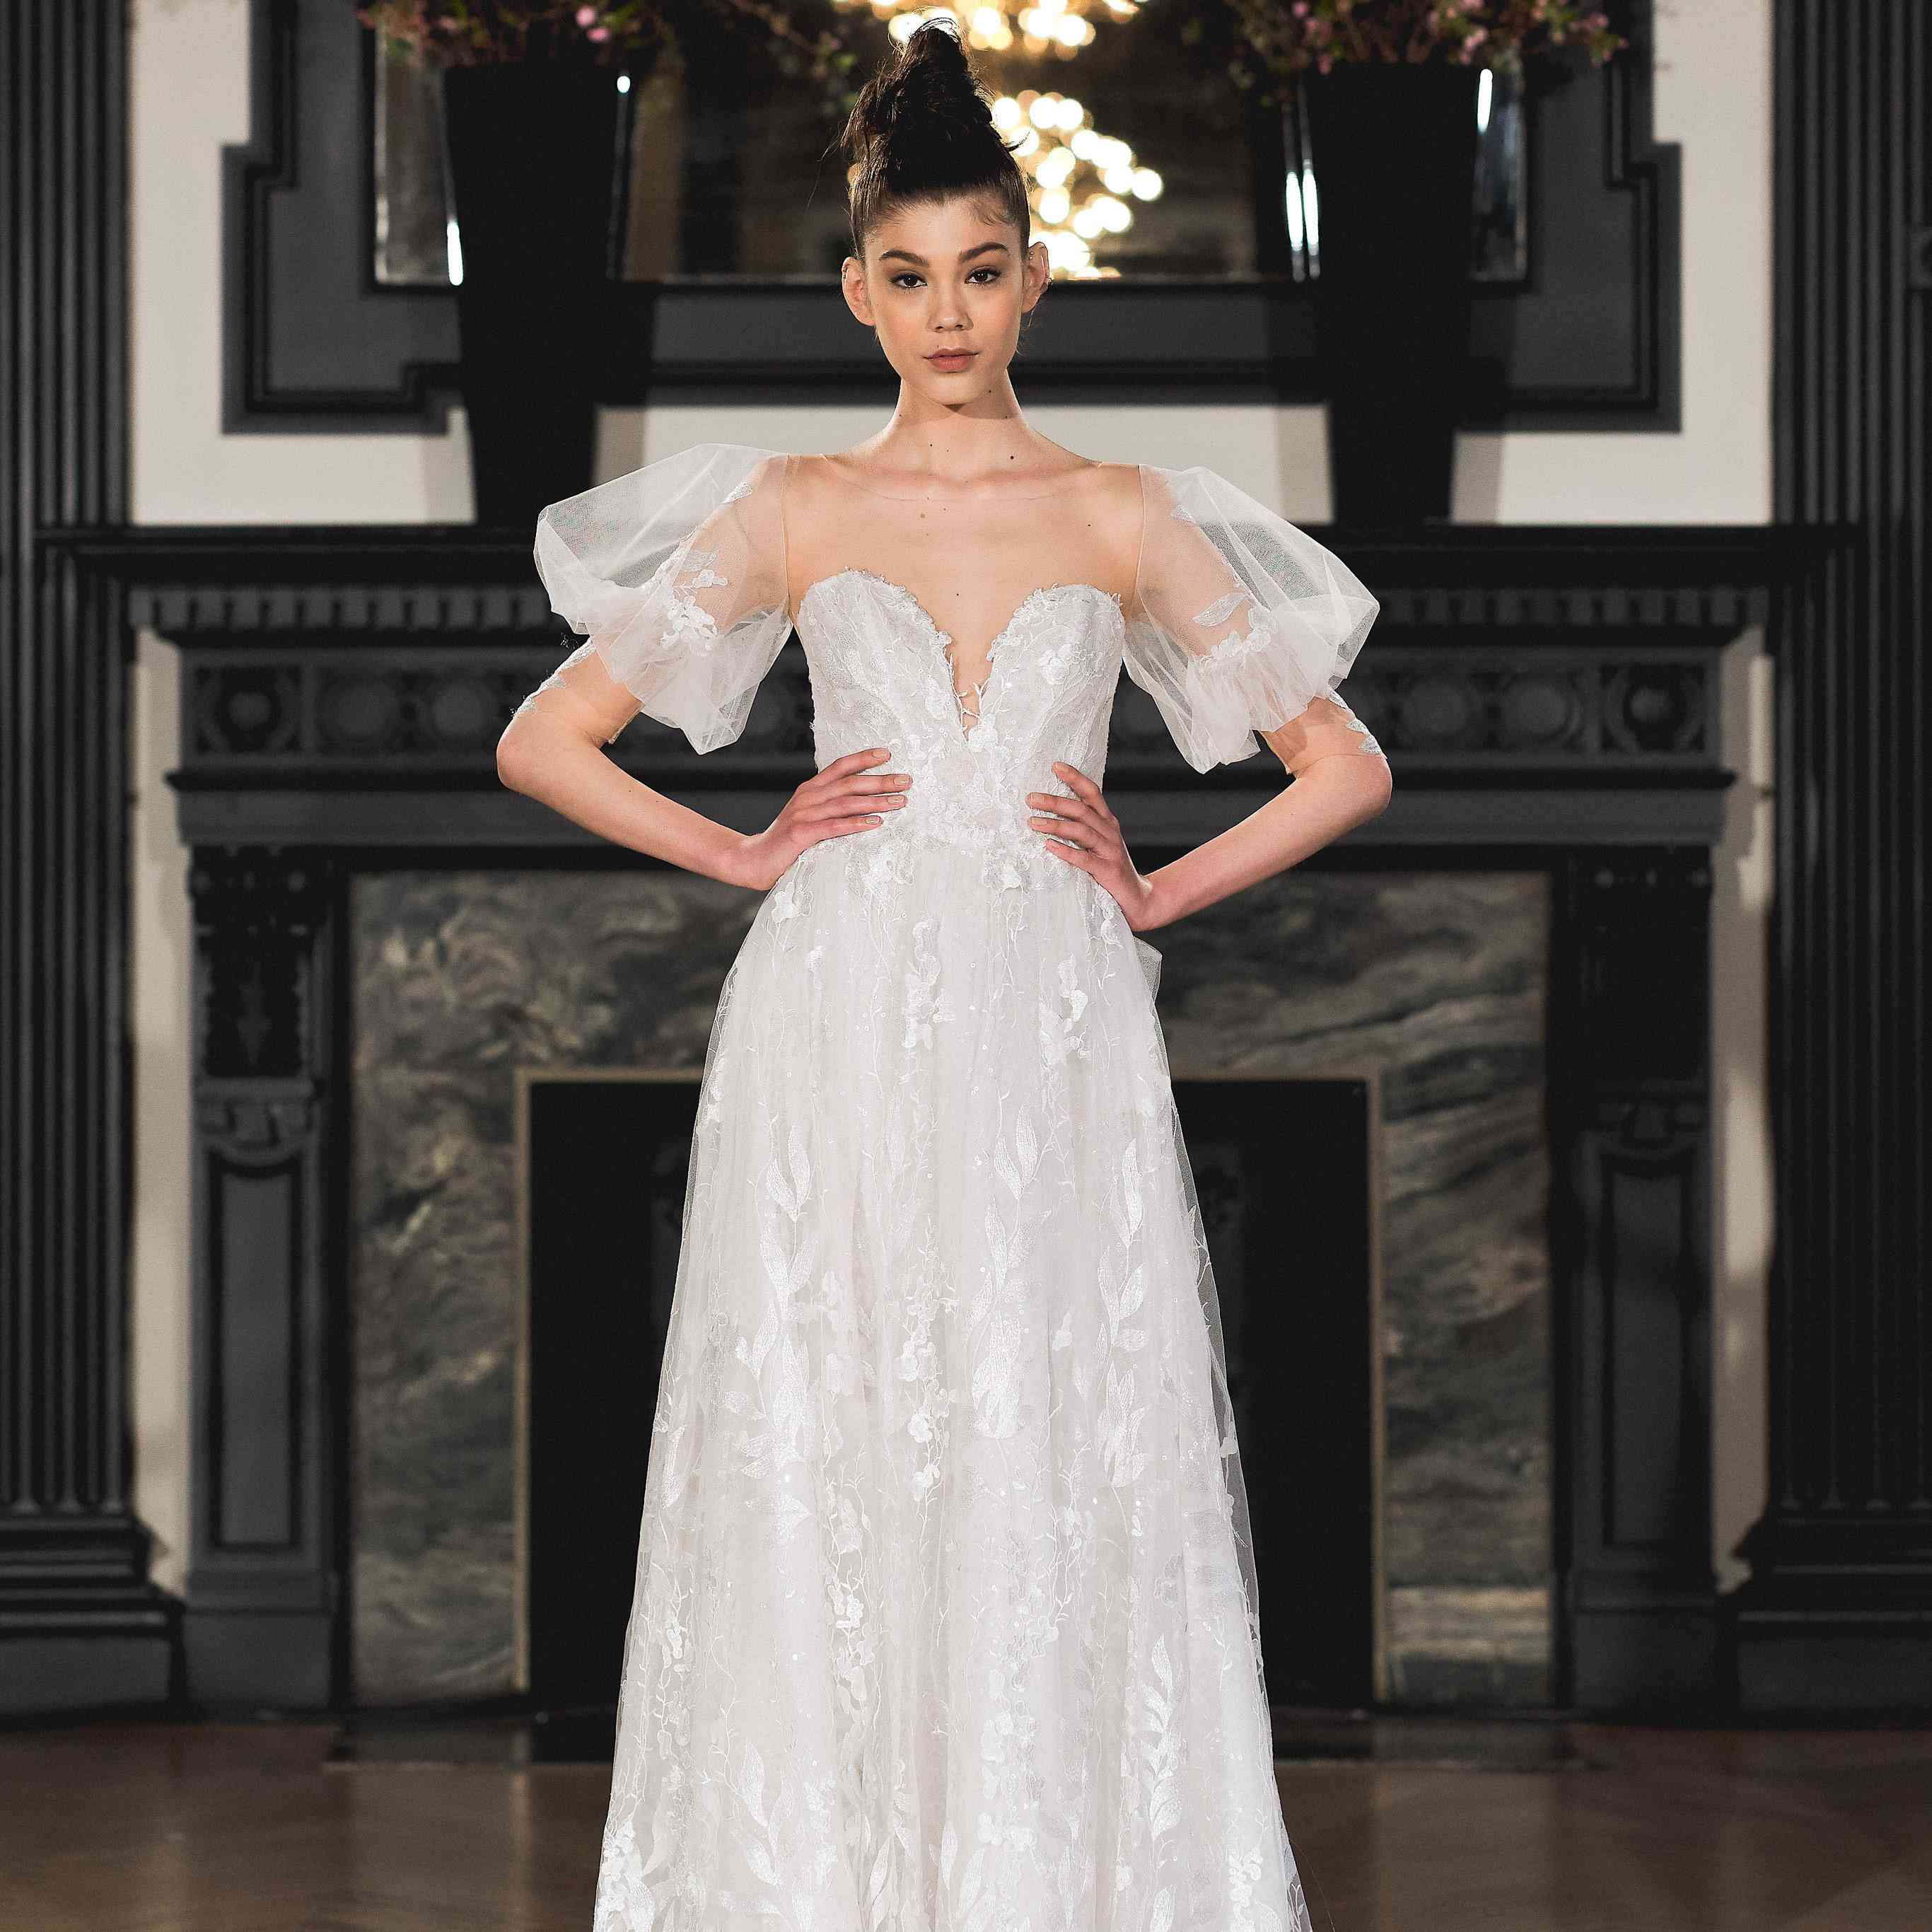 Puffy Sleeve Wedding Dresses Are Back 26 Styles That Feel Modern